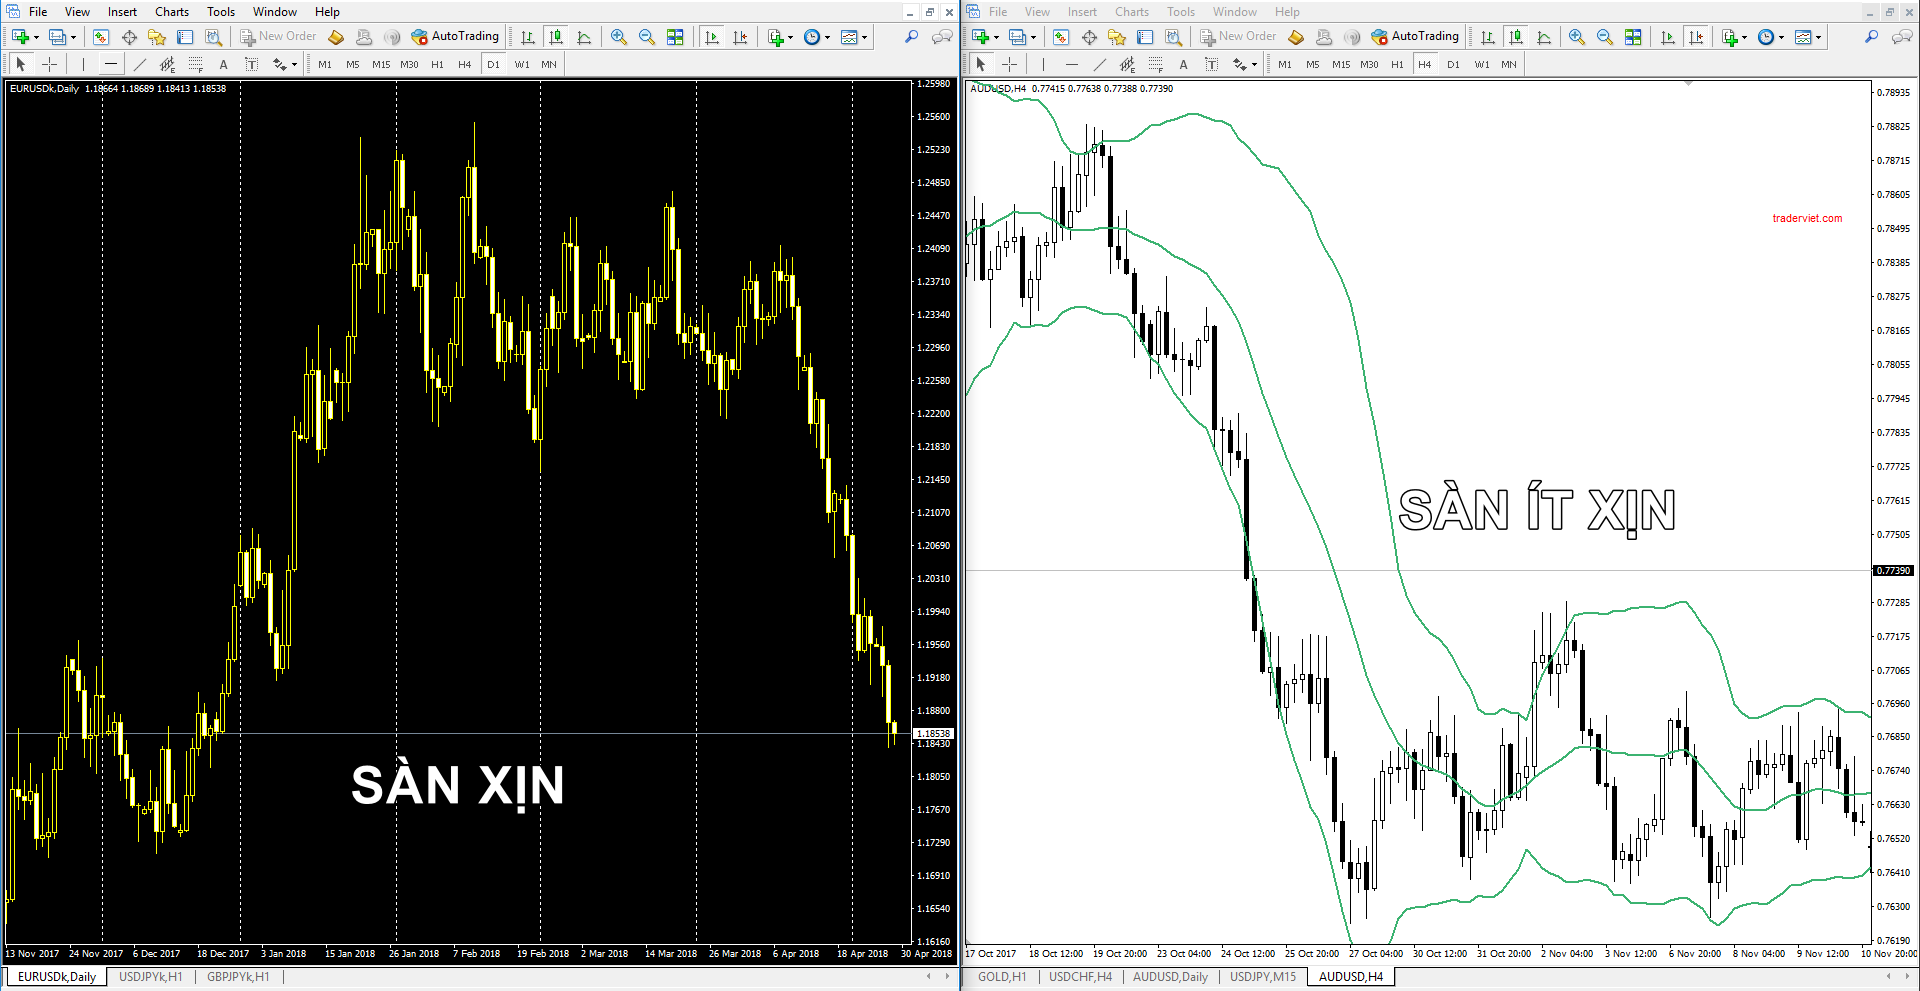 giao-dich-forex-traderviet.